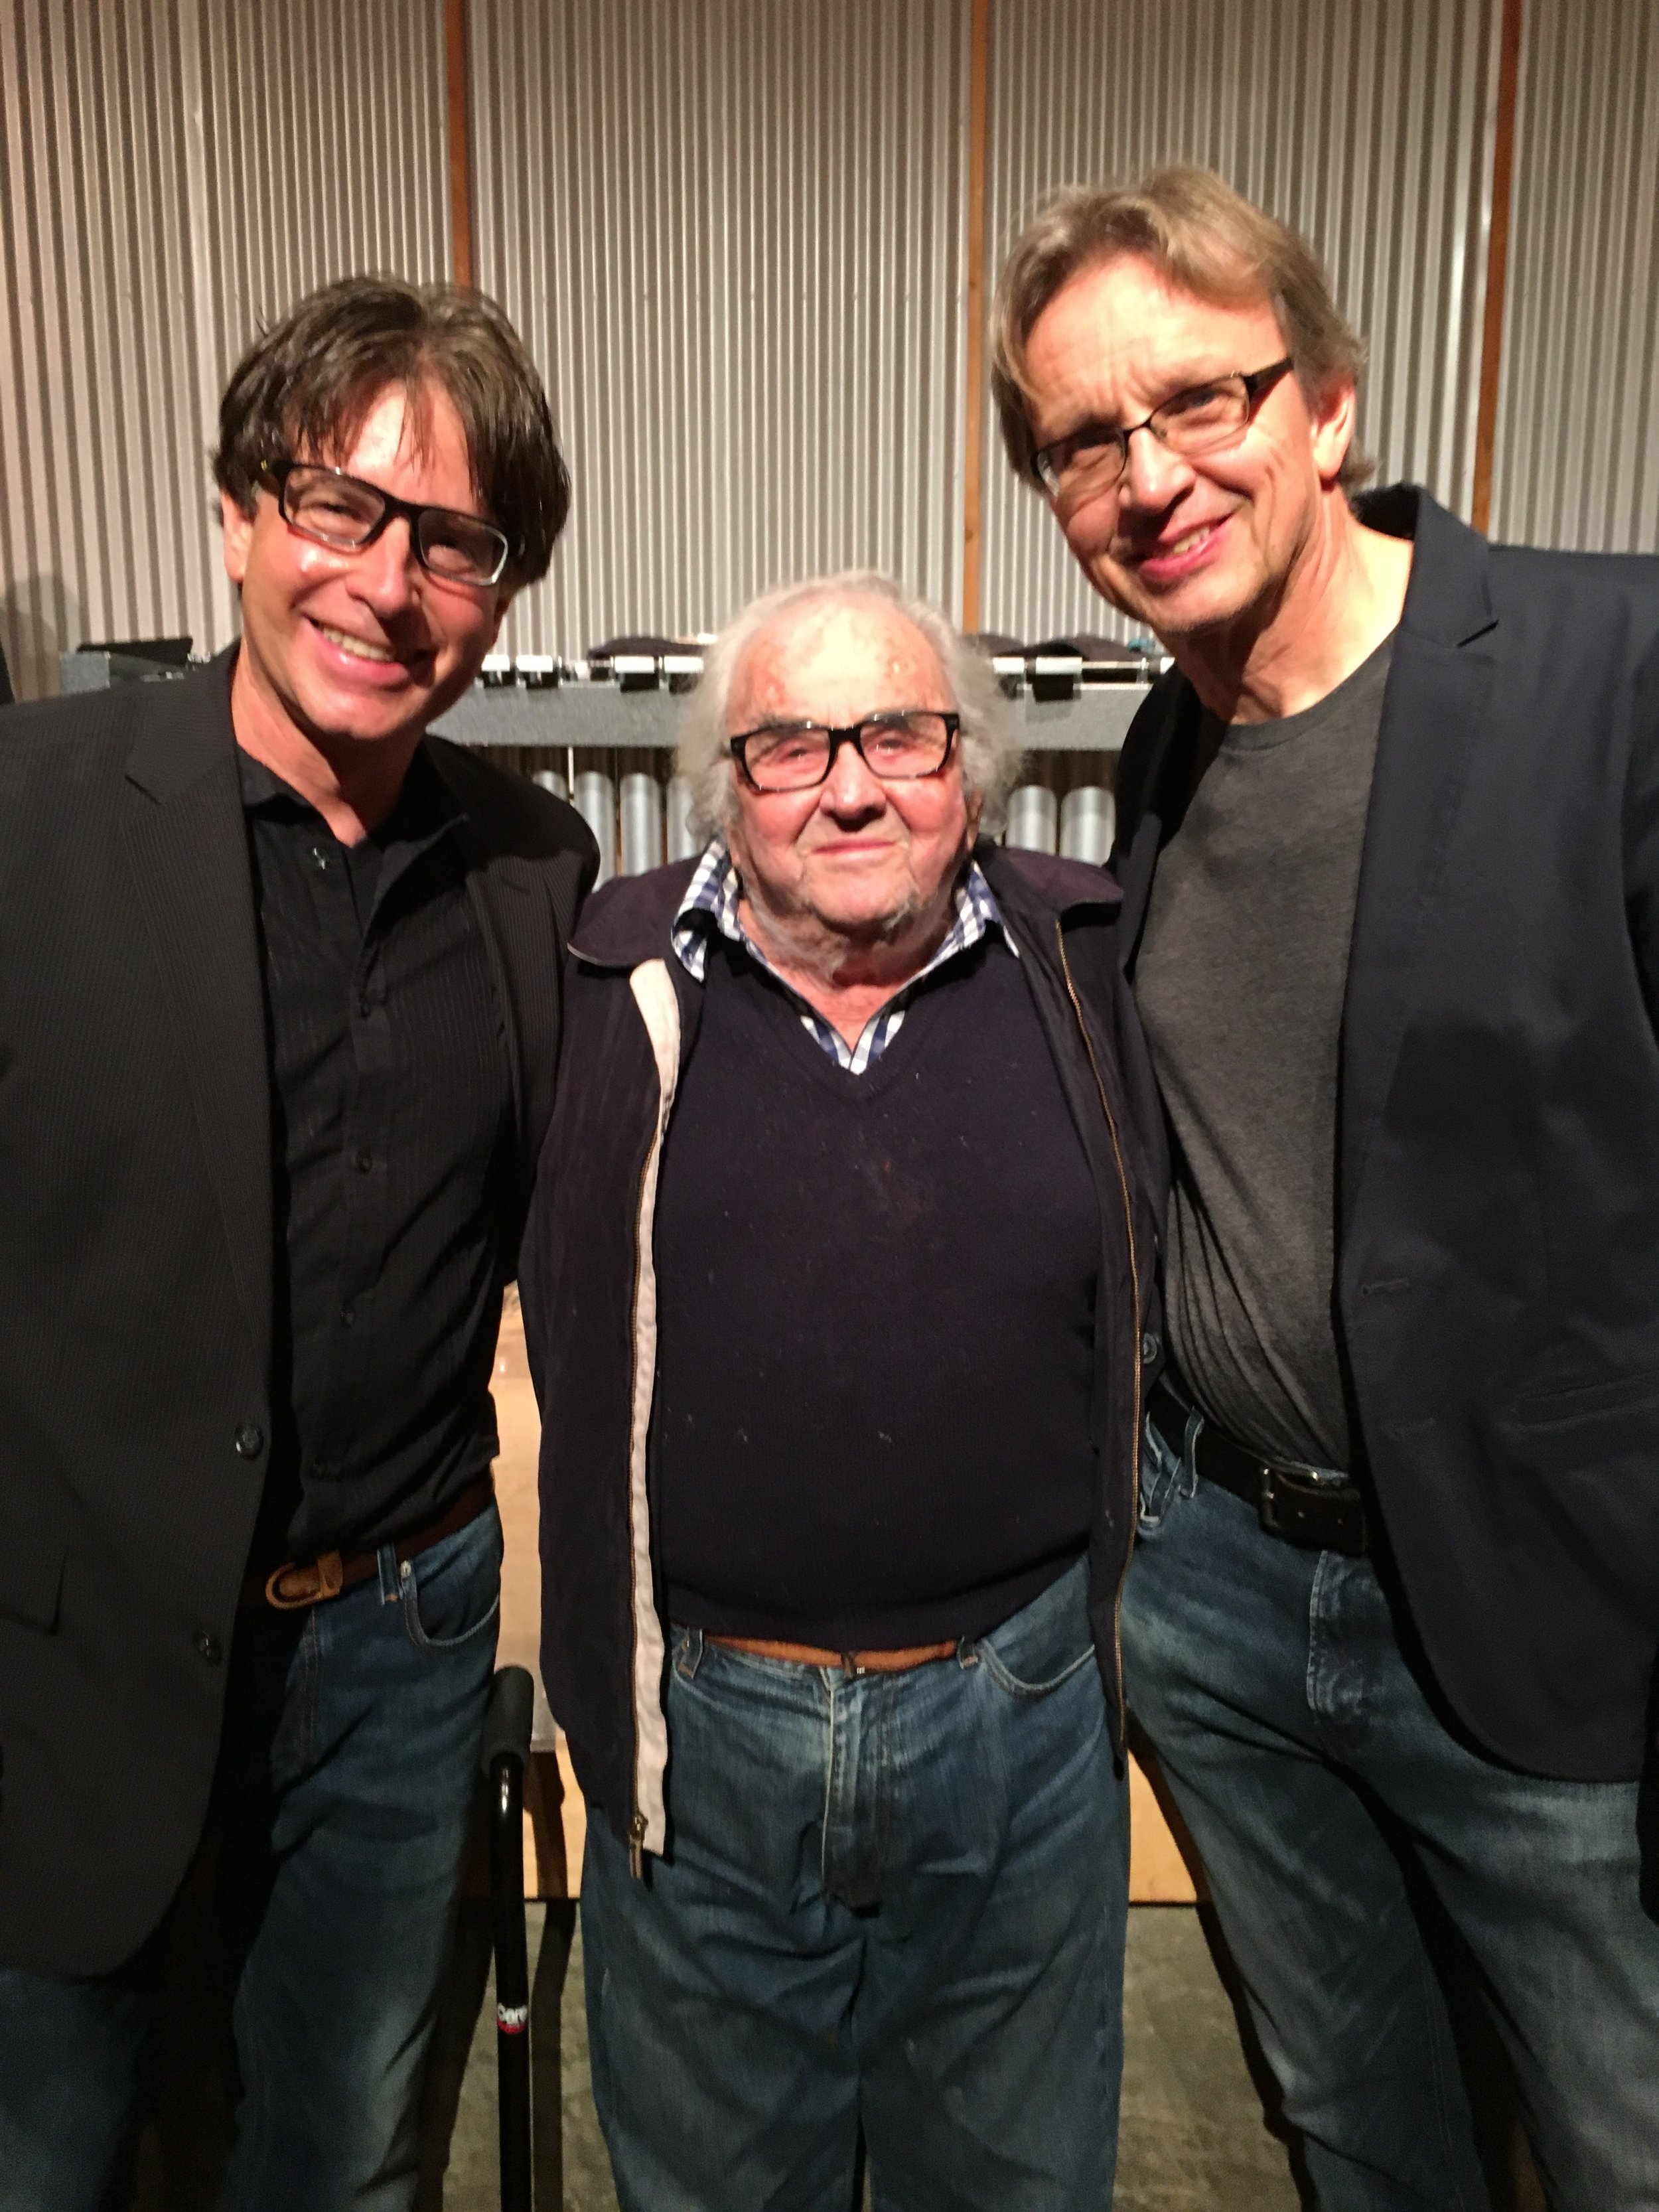 Three composers after the concert: Russell Steinberg, the great William Kraft, and Gernot Wolfgang